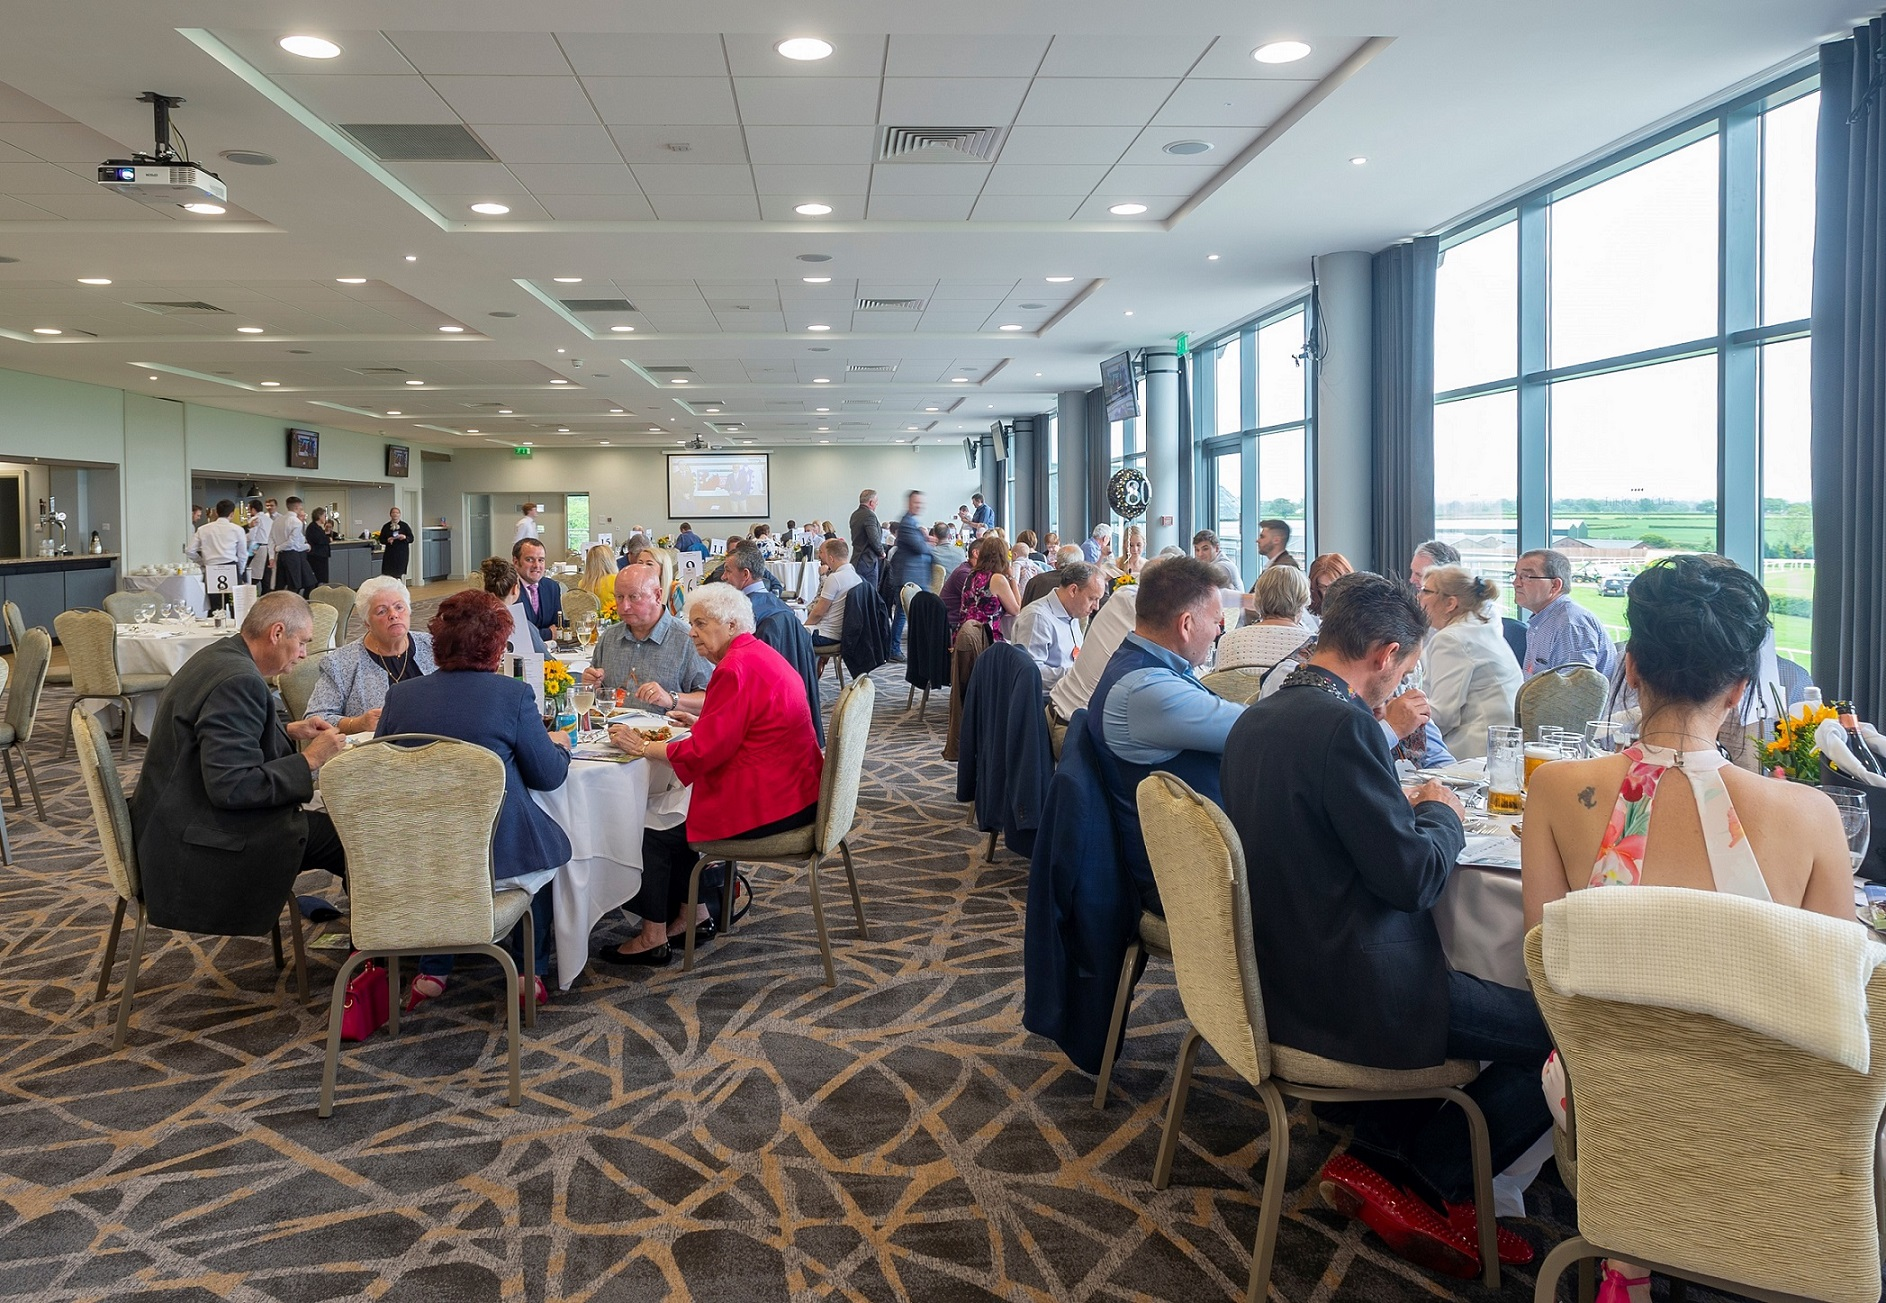 Racecourse unveils stunning new restaurant and conference facilities